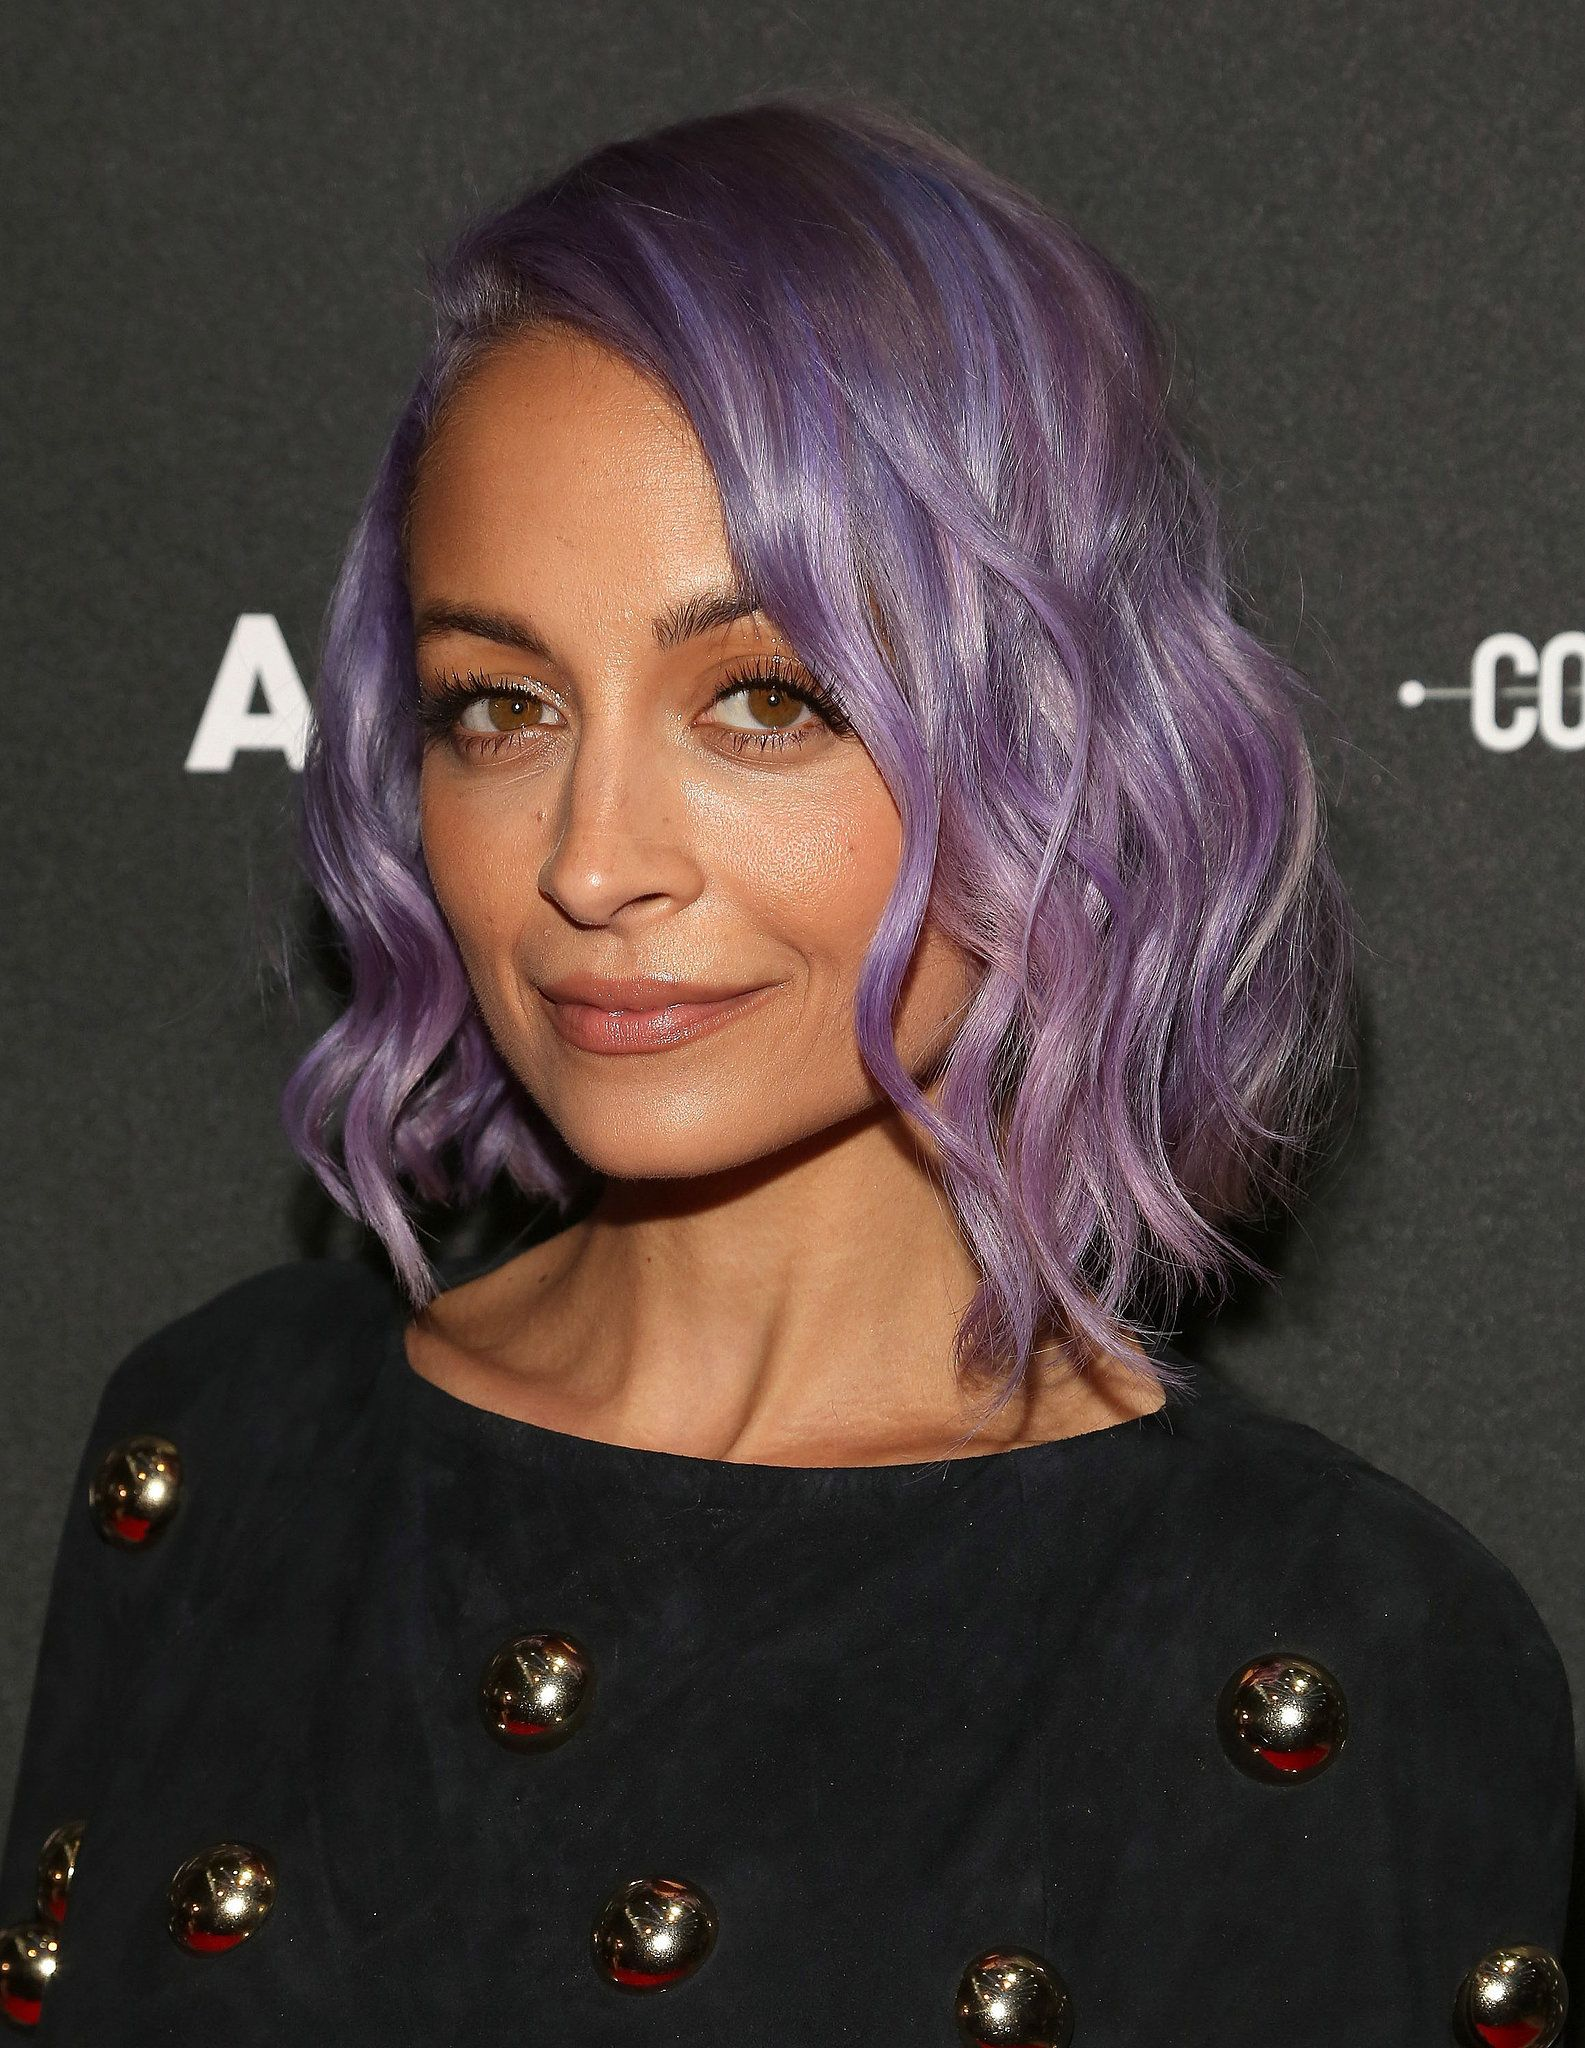 Nicole richie nicole richie hollywood hairstyles and wavy lob